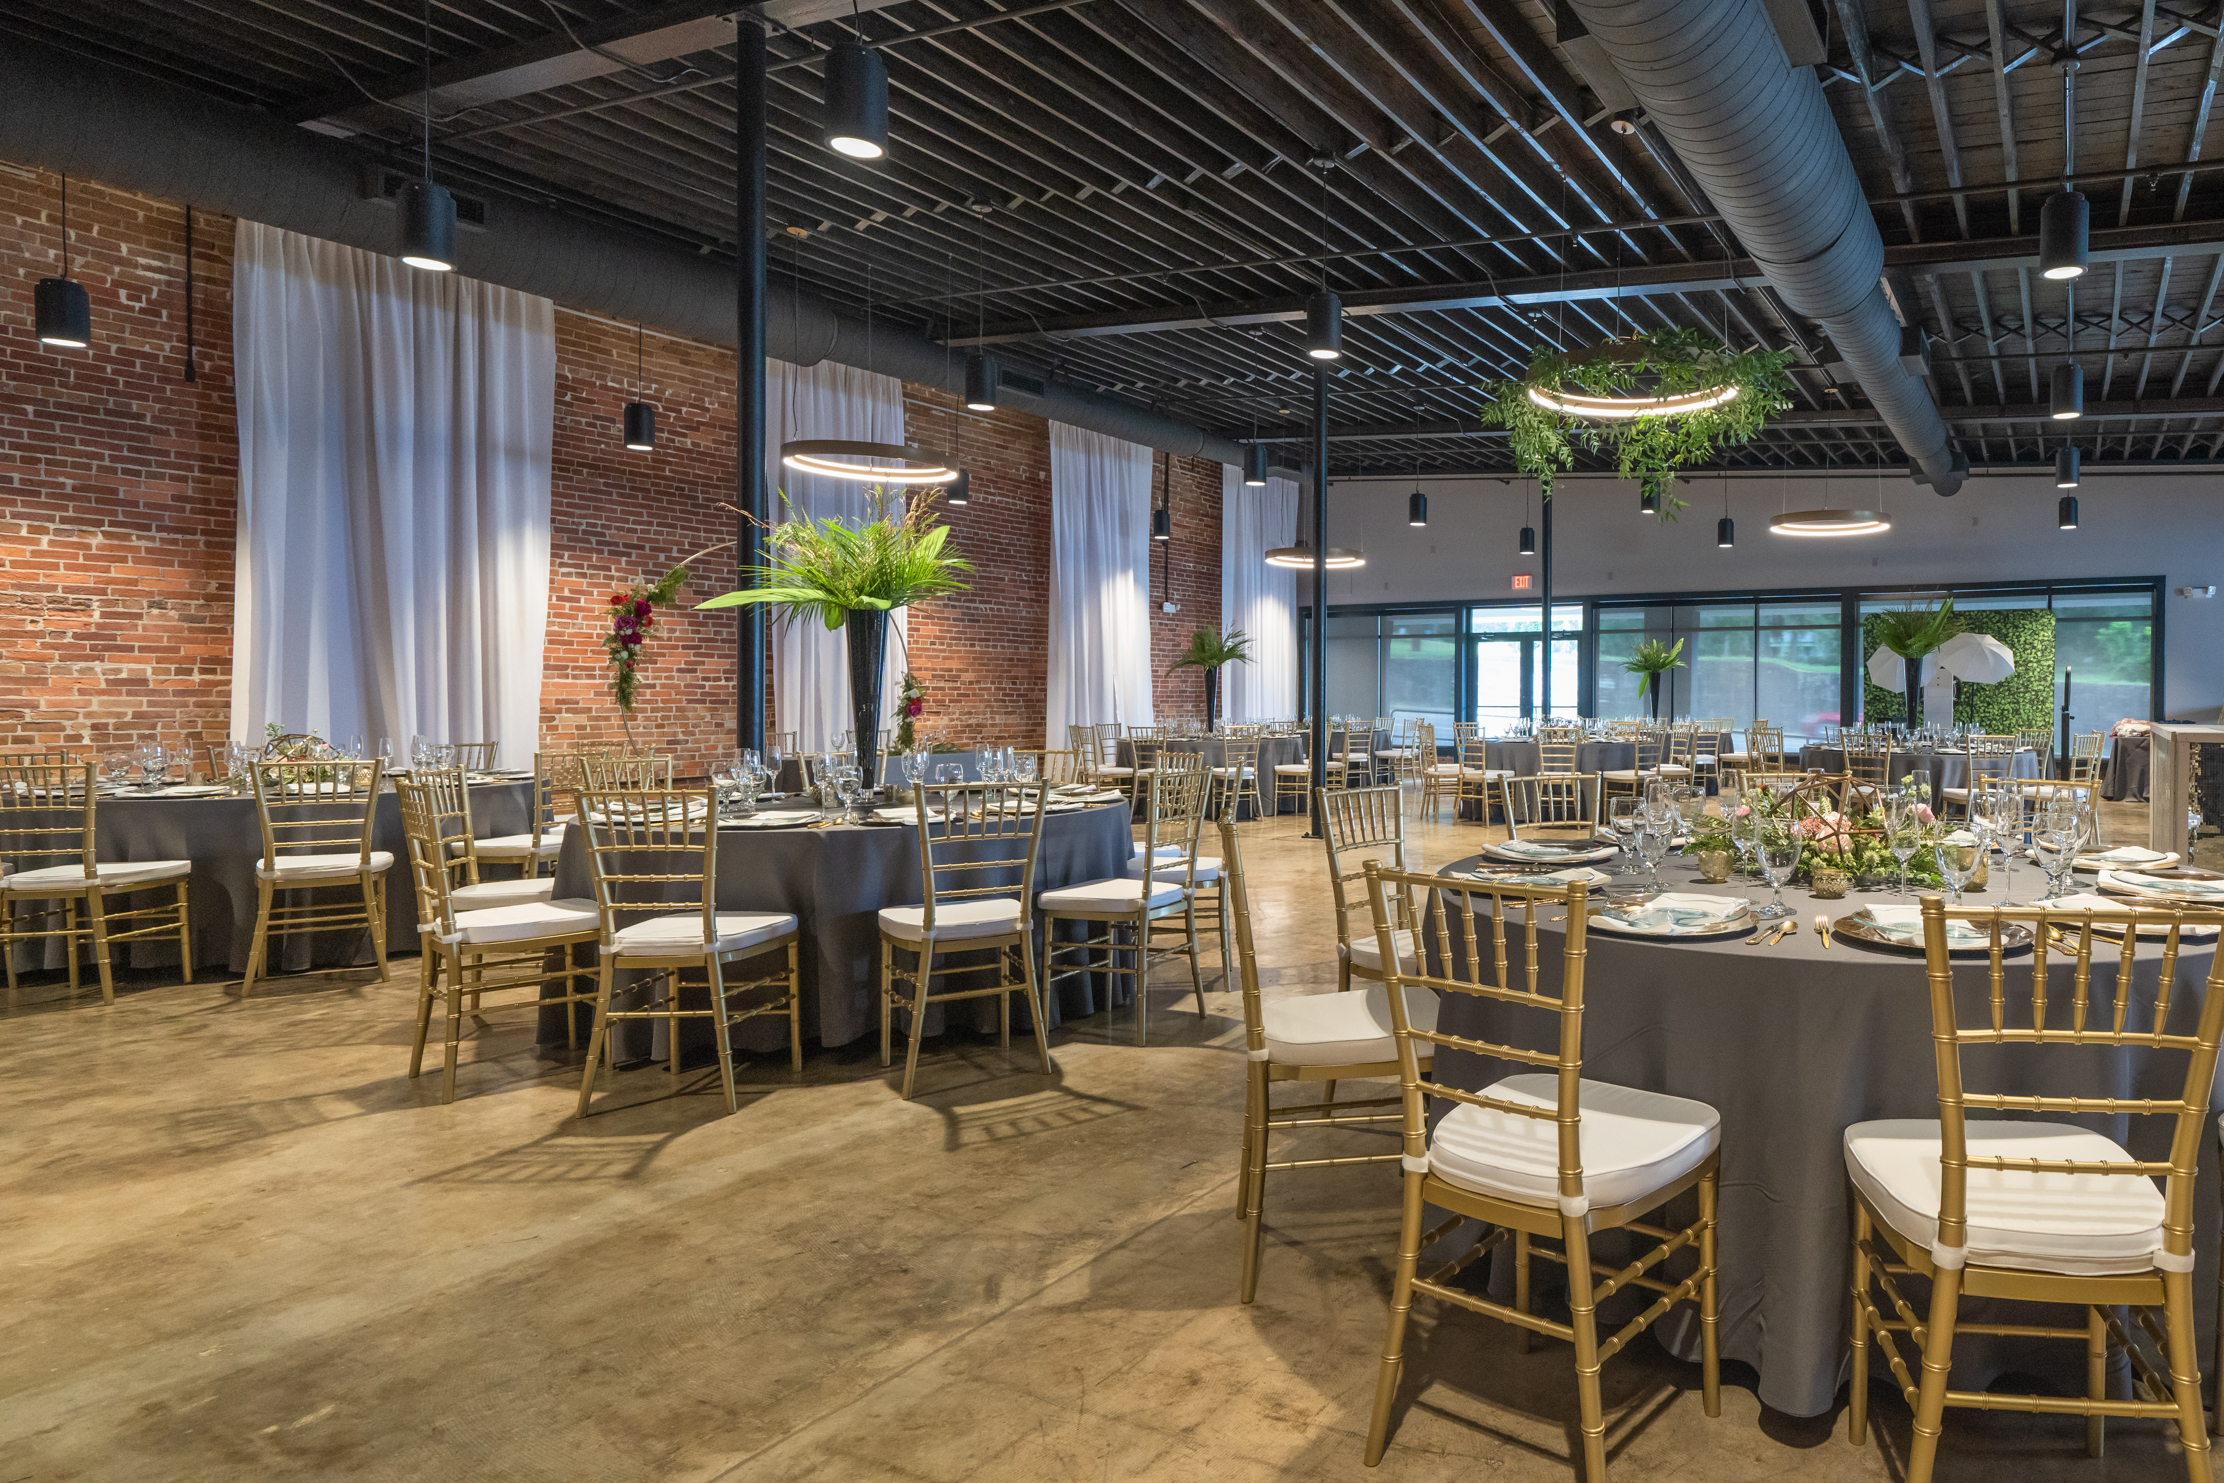 the ballroom - indoor - Featuring brick walls, polished concrete floors, mid-century modern light fixtures, and large windows that let in natural light. The ballroom also features a signature bar with seating.